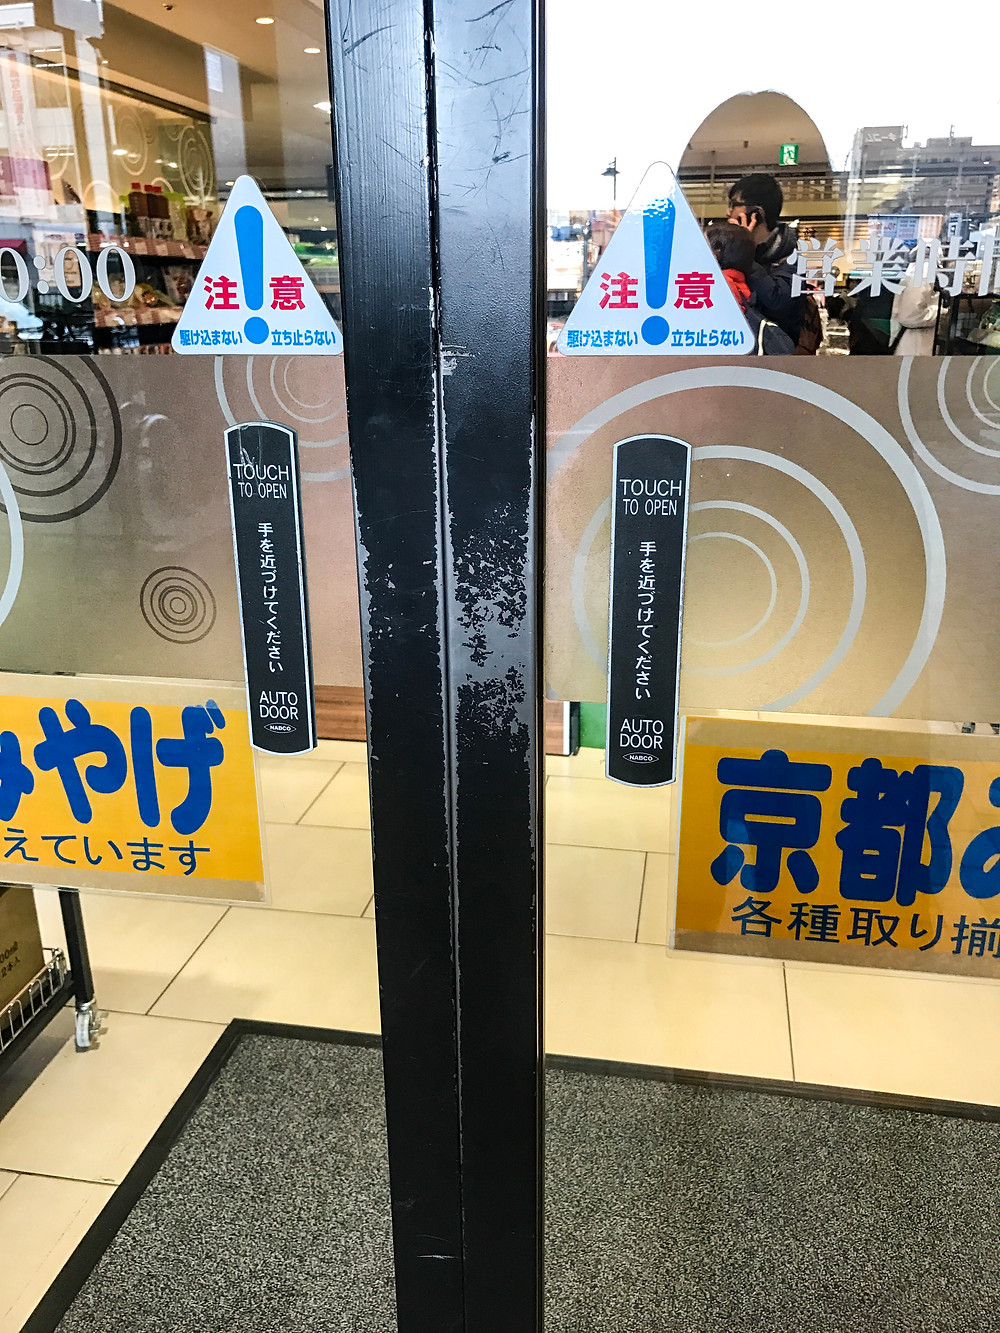 Push the button on the sliding door